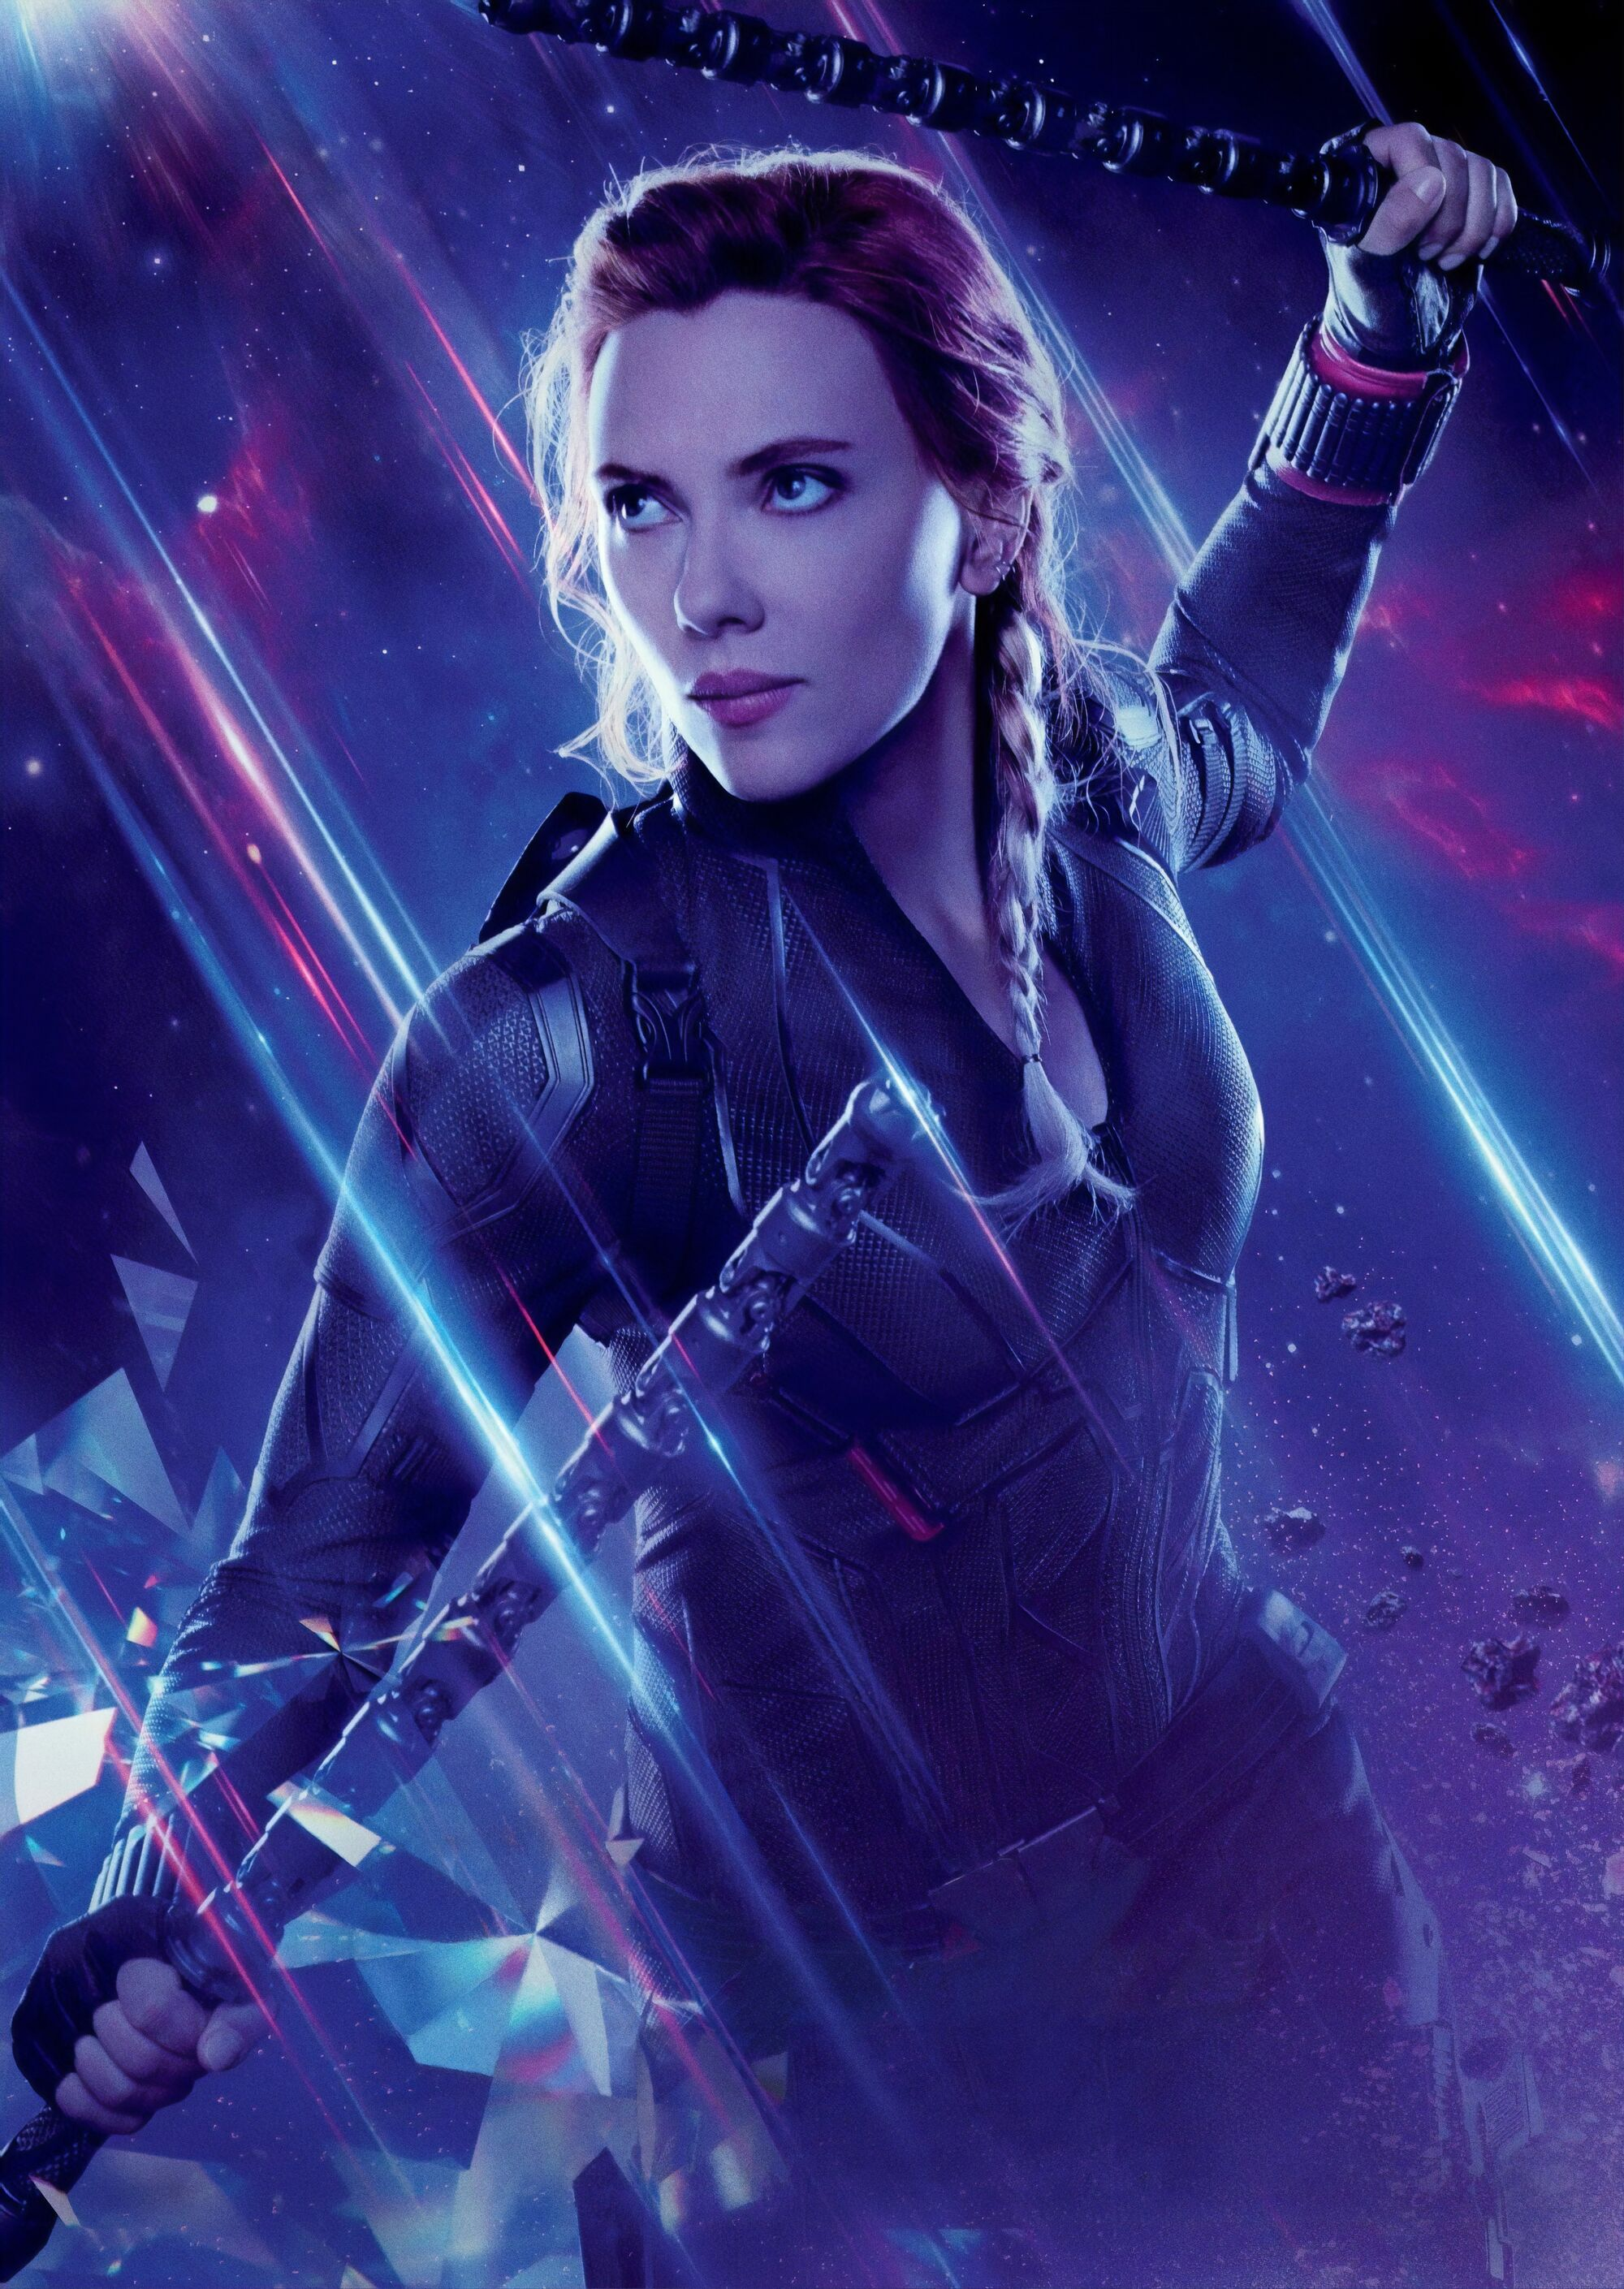 Further details from the Black Widow released footage